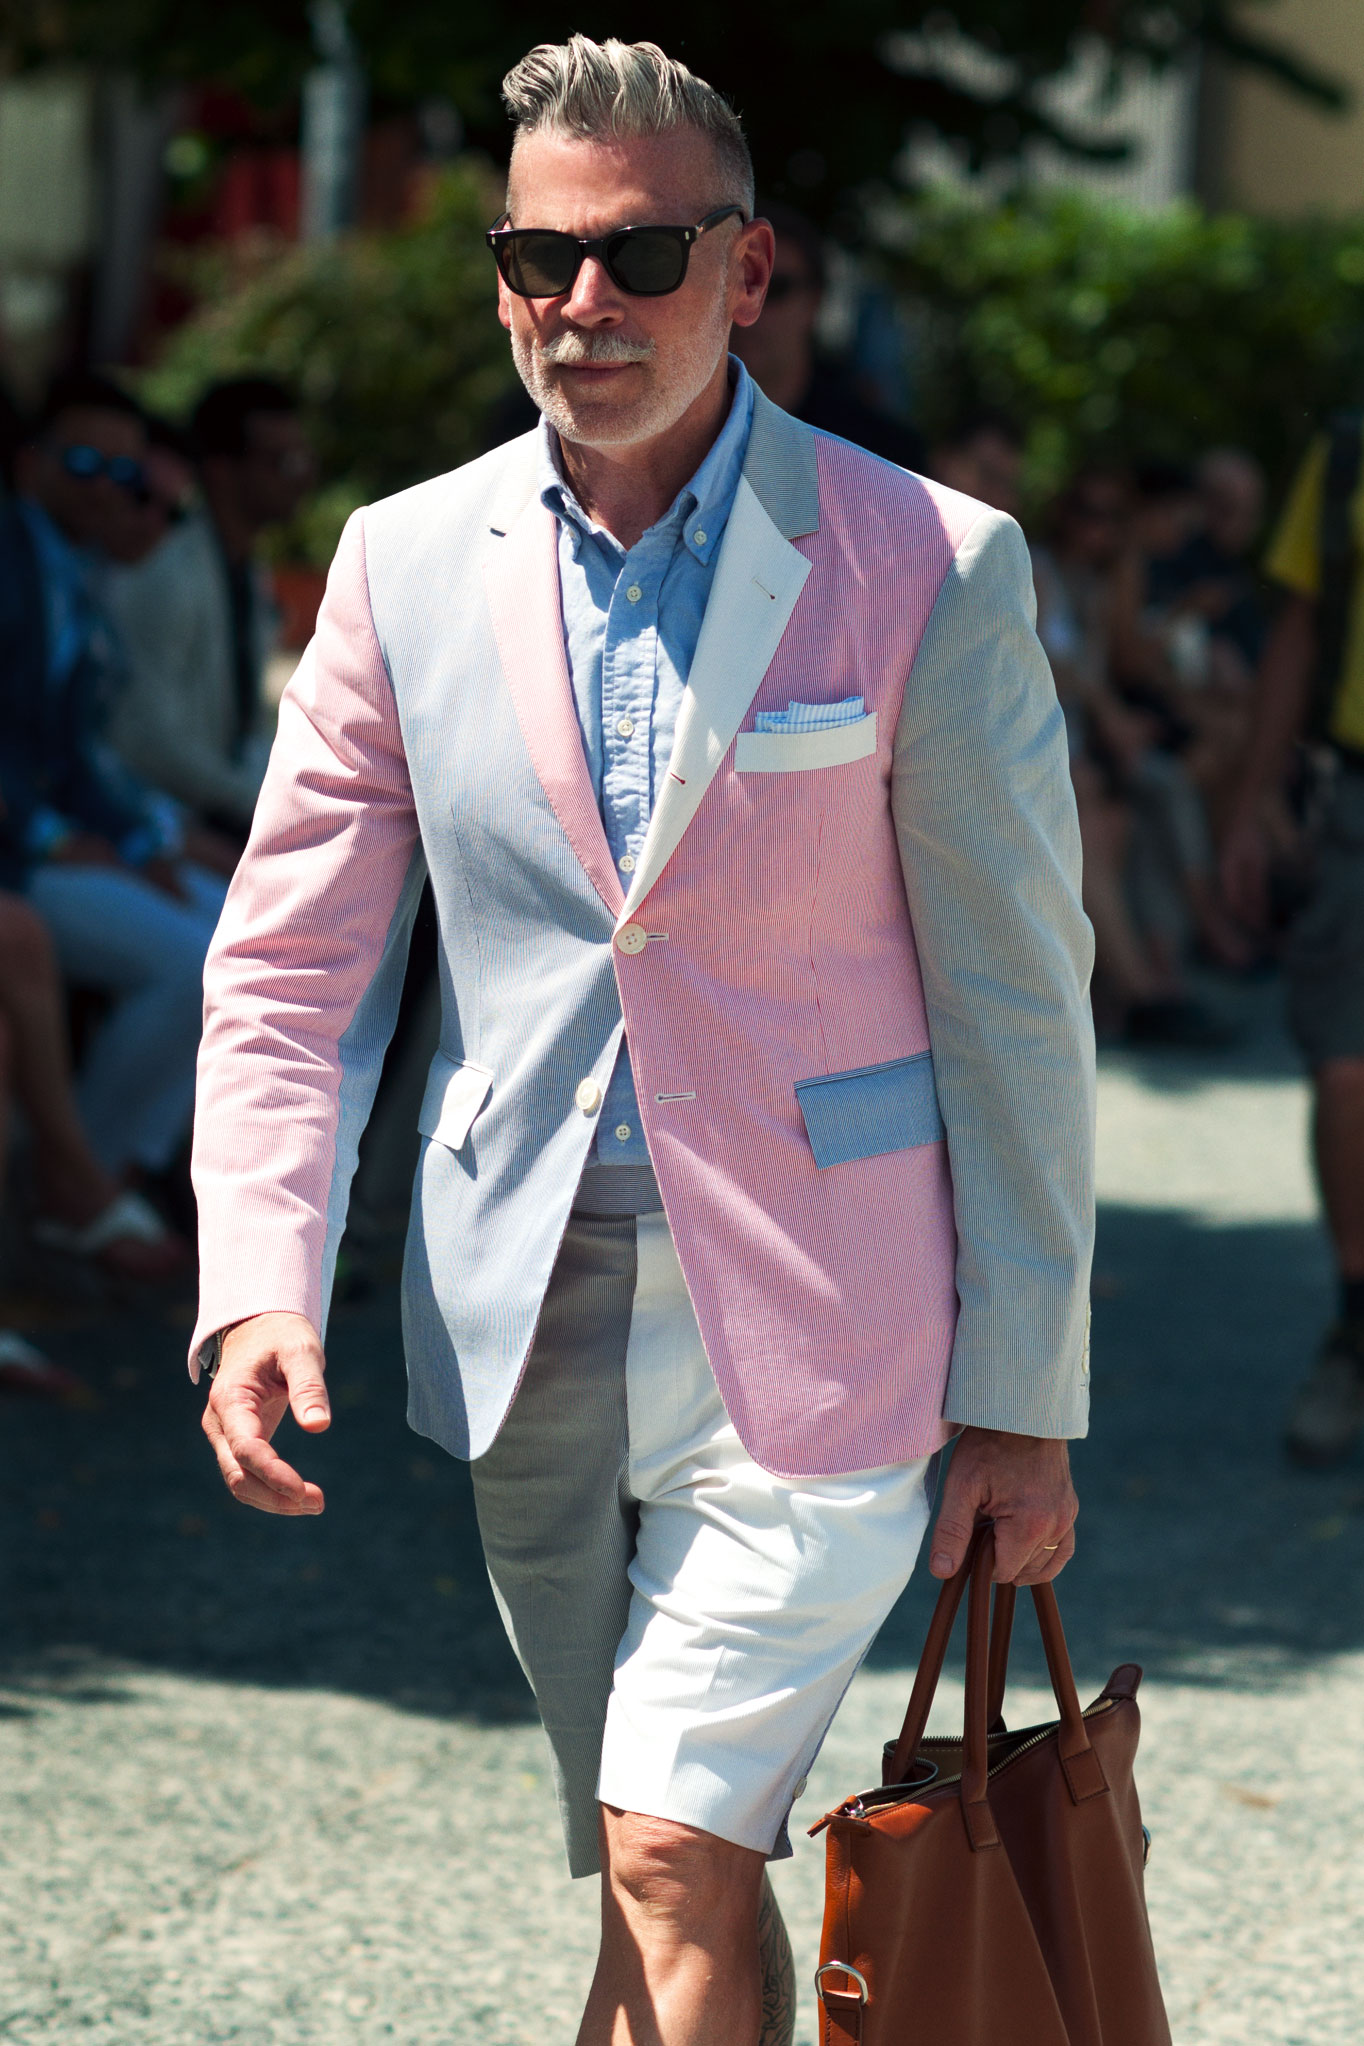 Nickelson Wooster at Pitti Uomo 82